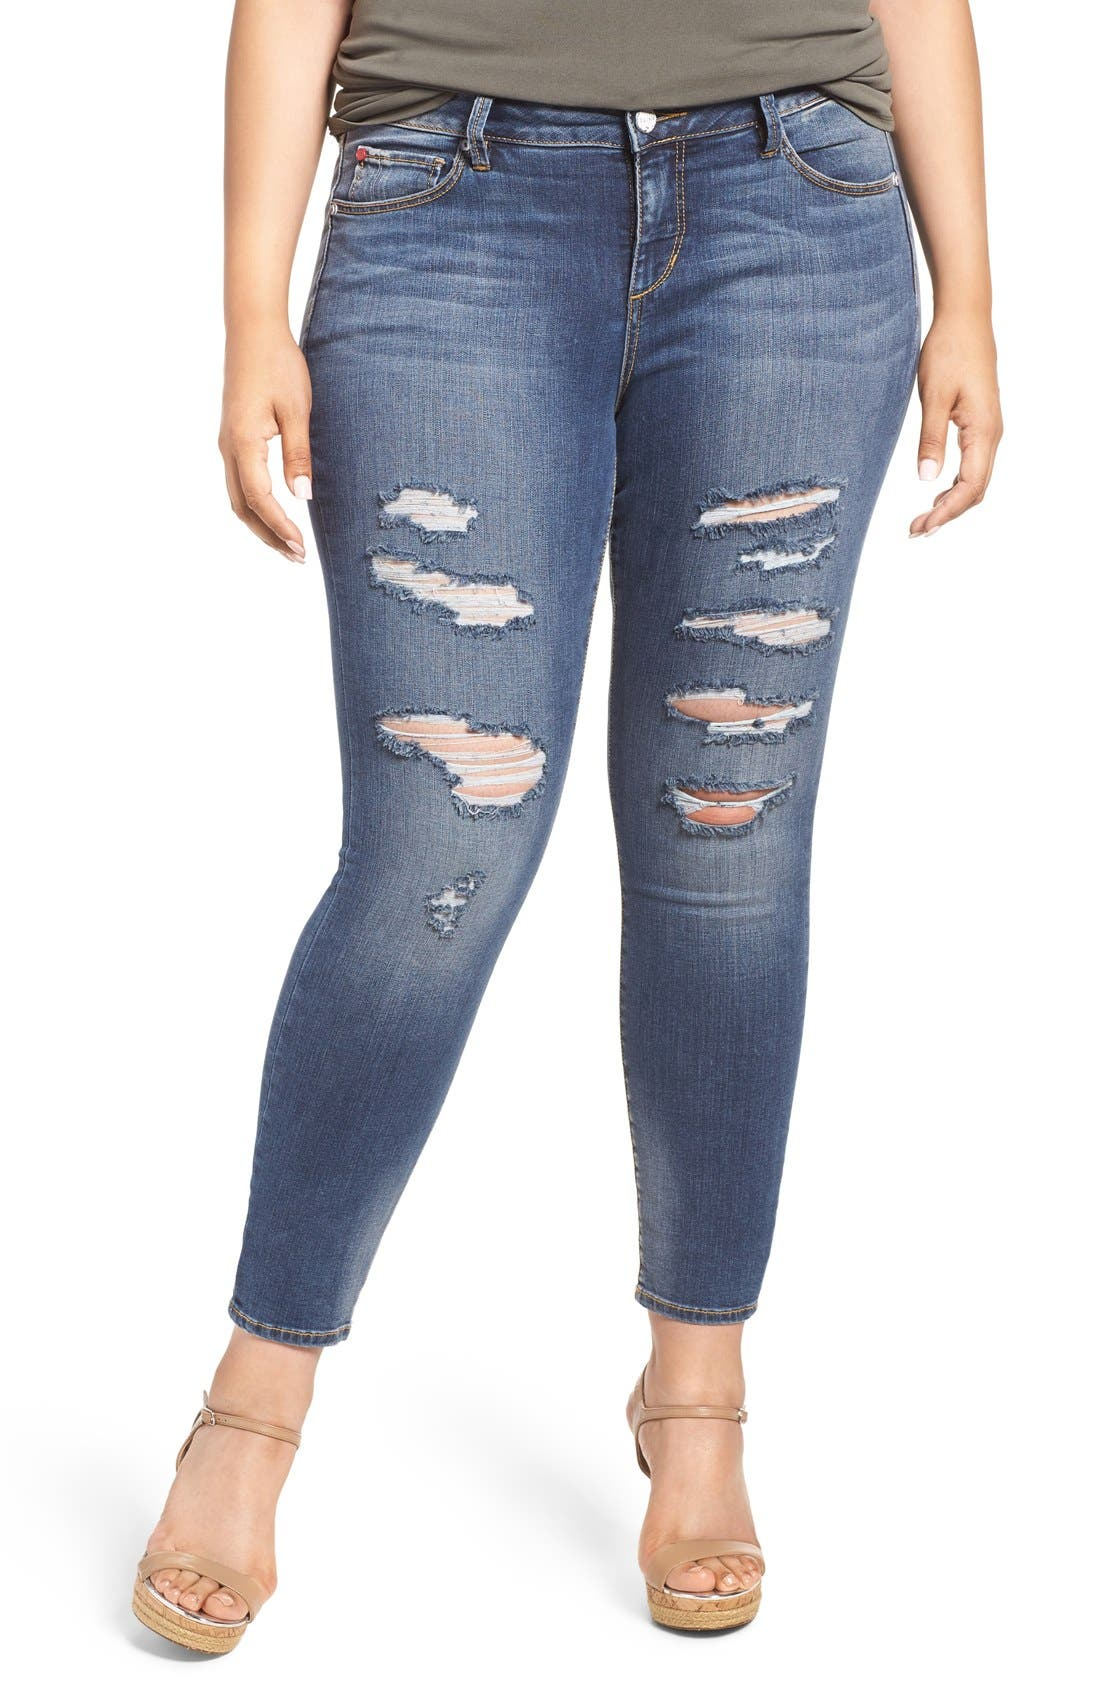 Alternate Image 1 Selected - SLINK Jeans Ripped Stretch Ankle Skinny Jeans (Danika) (Plus Size)